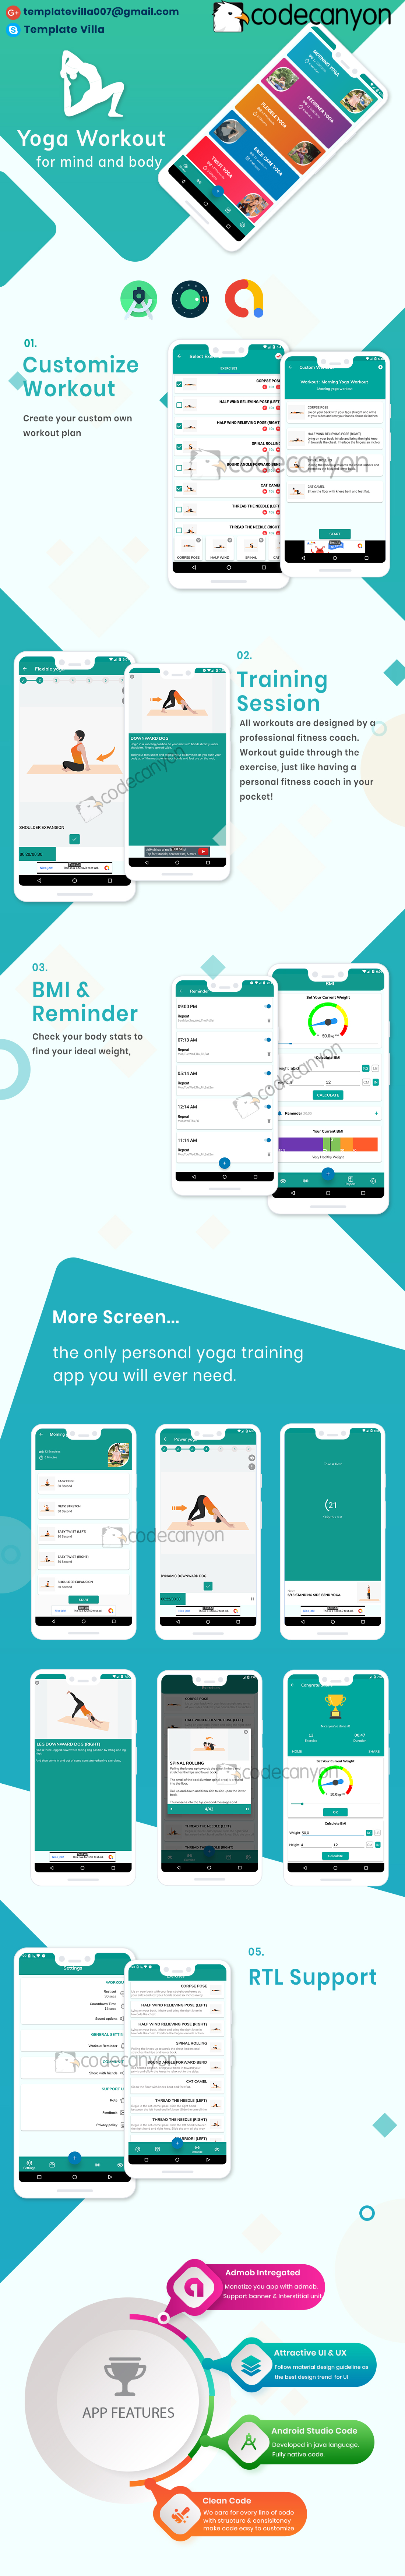 Yoga Workout with admob ready to publish Template - 5